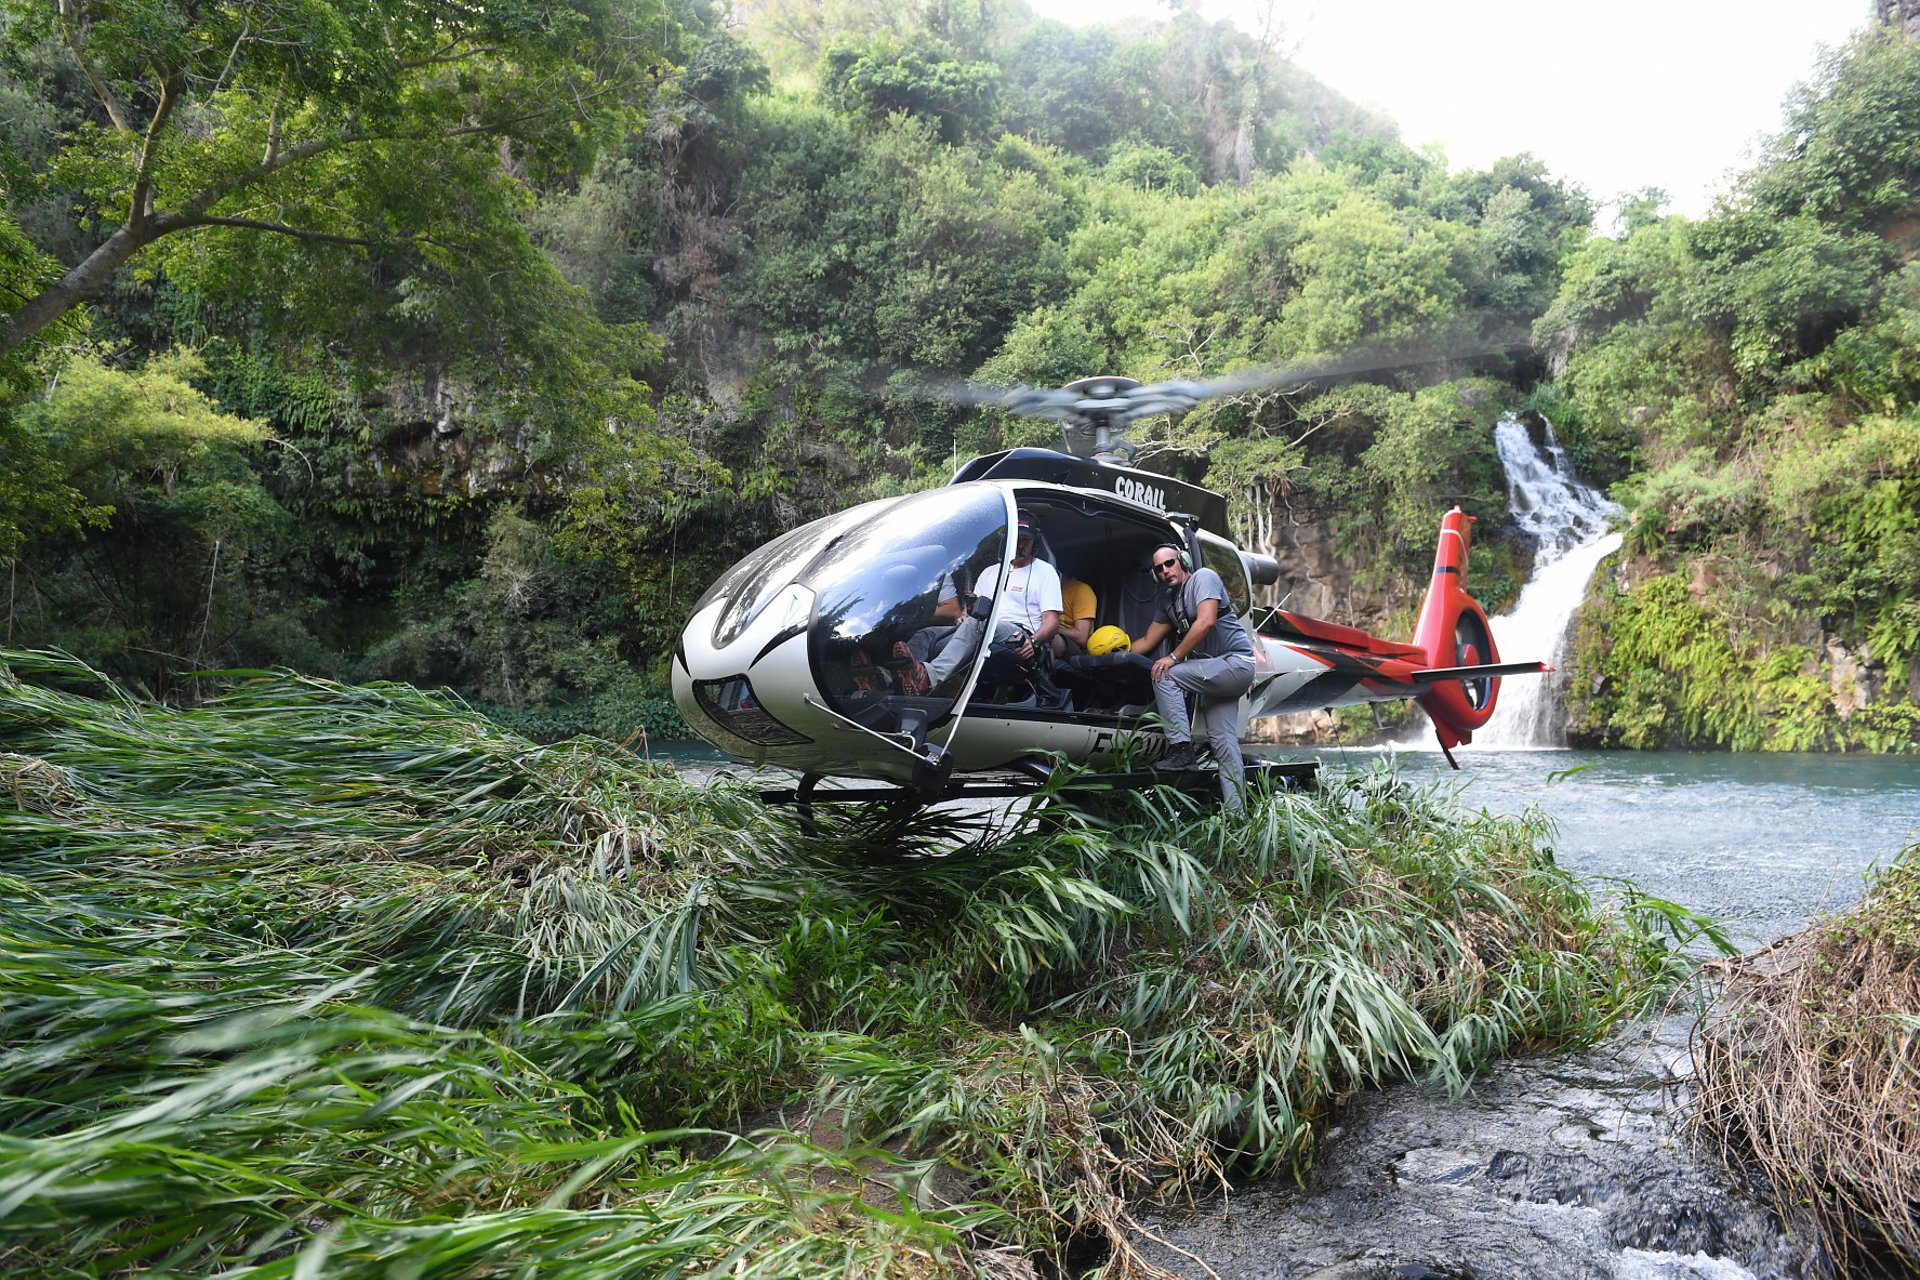 An Airbus H130 delivered to Corail Hélicoptères touches down in a jungle area.